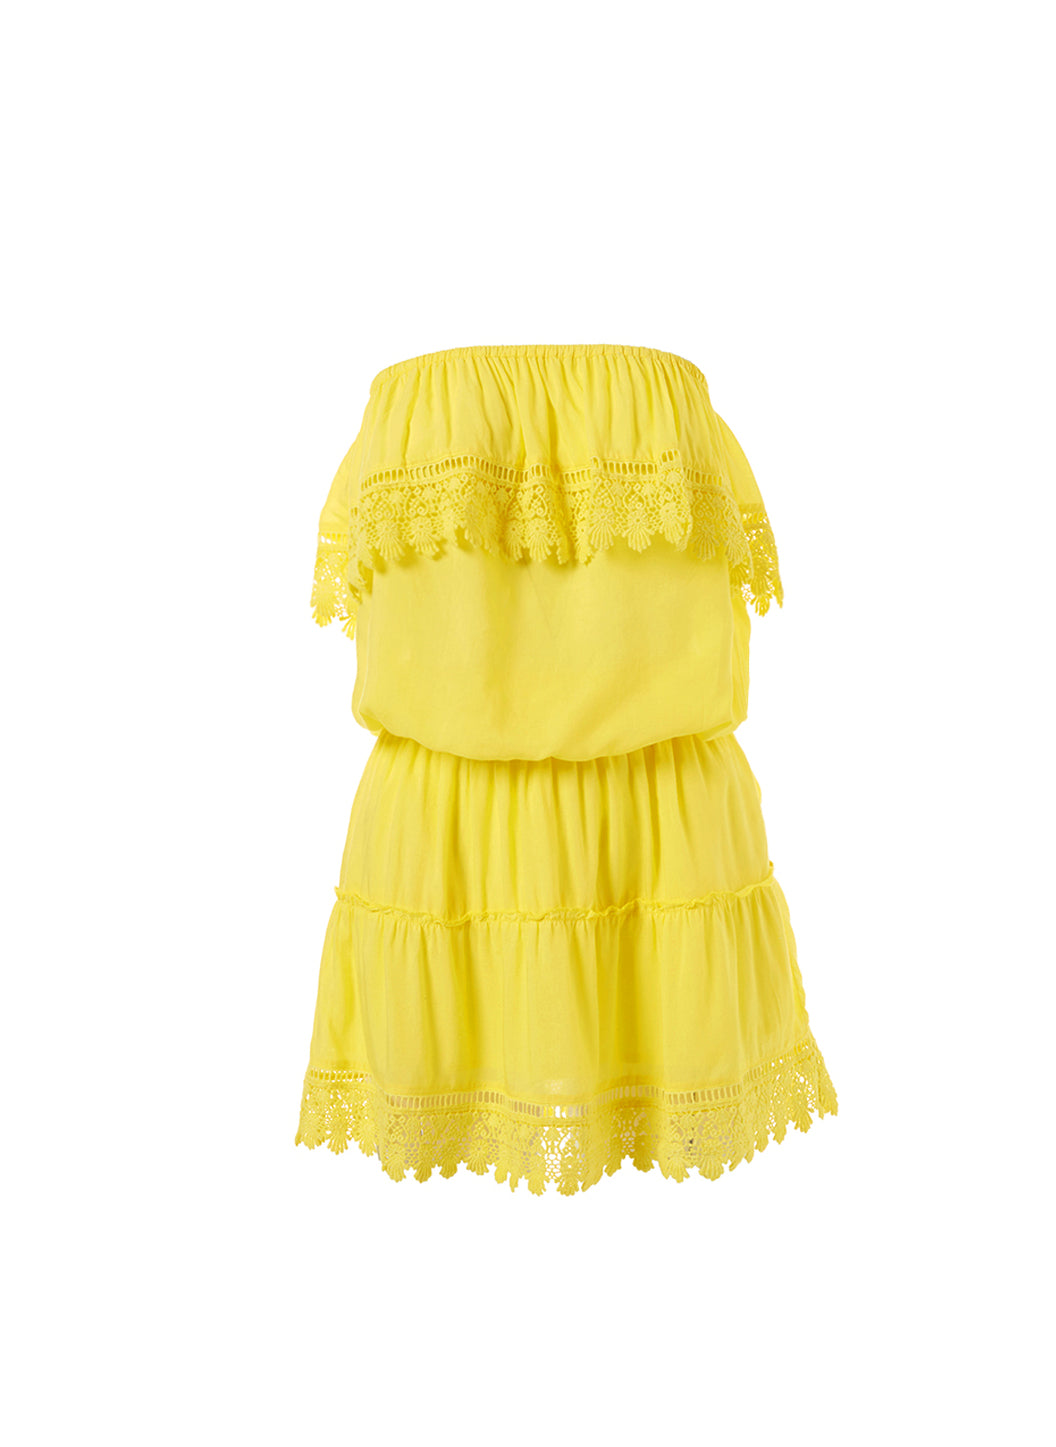 Joy Yellow Bandeau Embroidered Frill Short Dress - Melissa Odabash Dresses & Kaftans